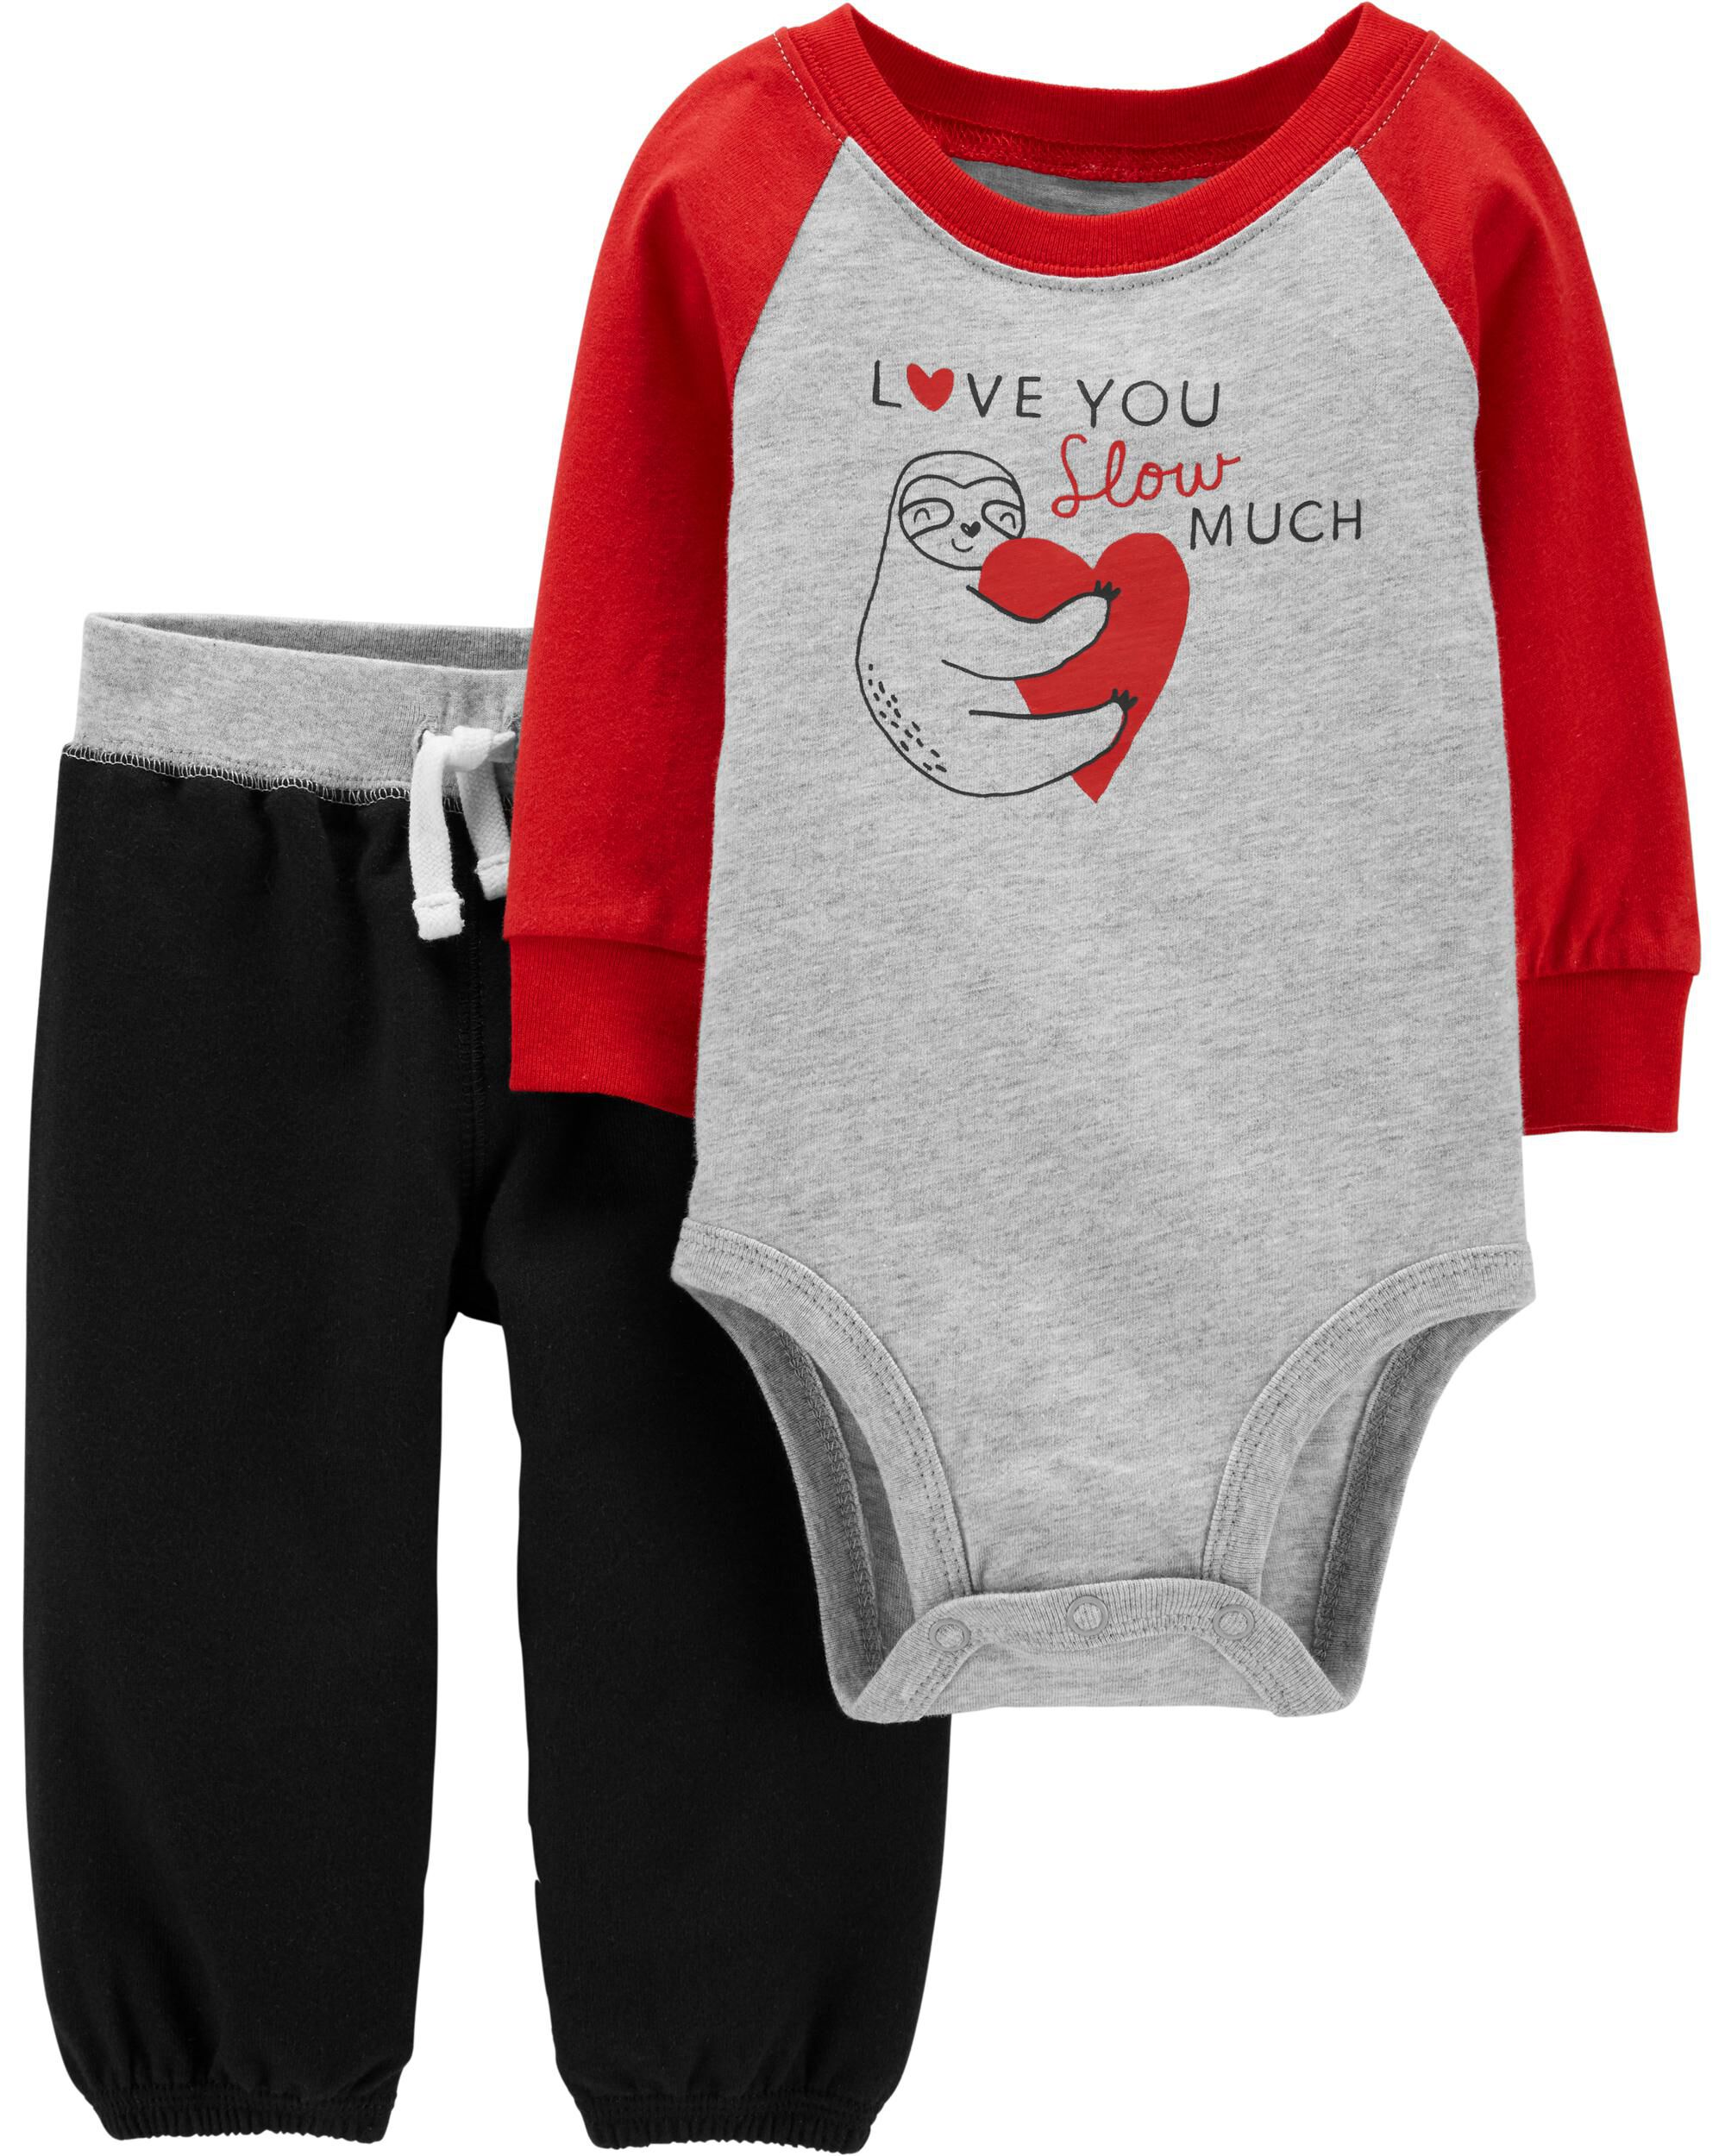 VALENTINE/'S 4-PIECE BABY OUTFIT New Size 6-9M